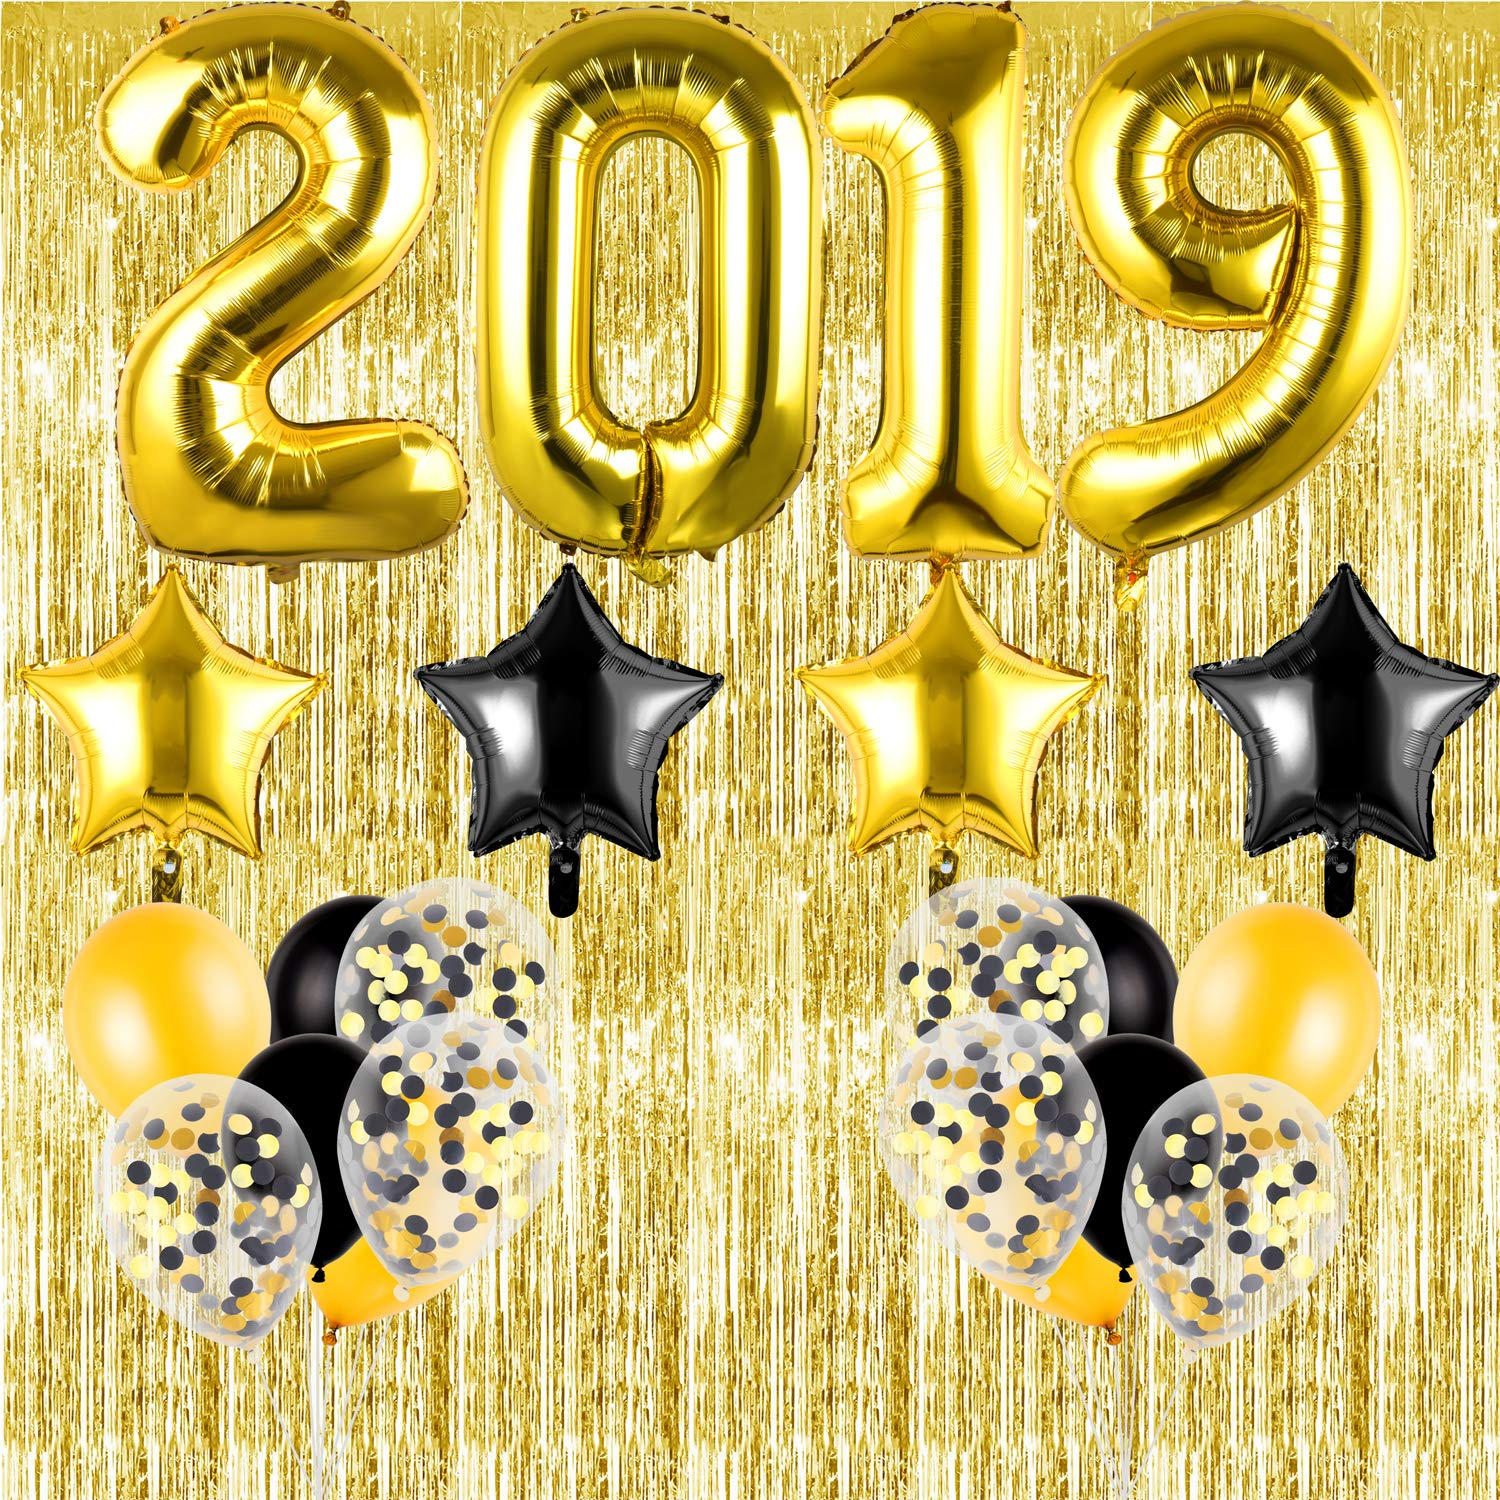 SOTOGO 23 Pack 2019 Balloons Set Gold Black Balloons Decoration Great for Graduations Party Supplies,New Years Eve Backdrop